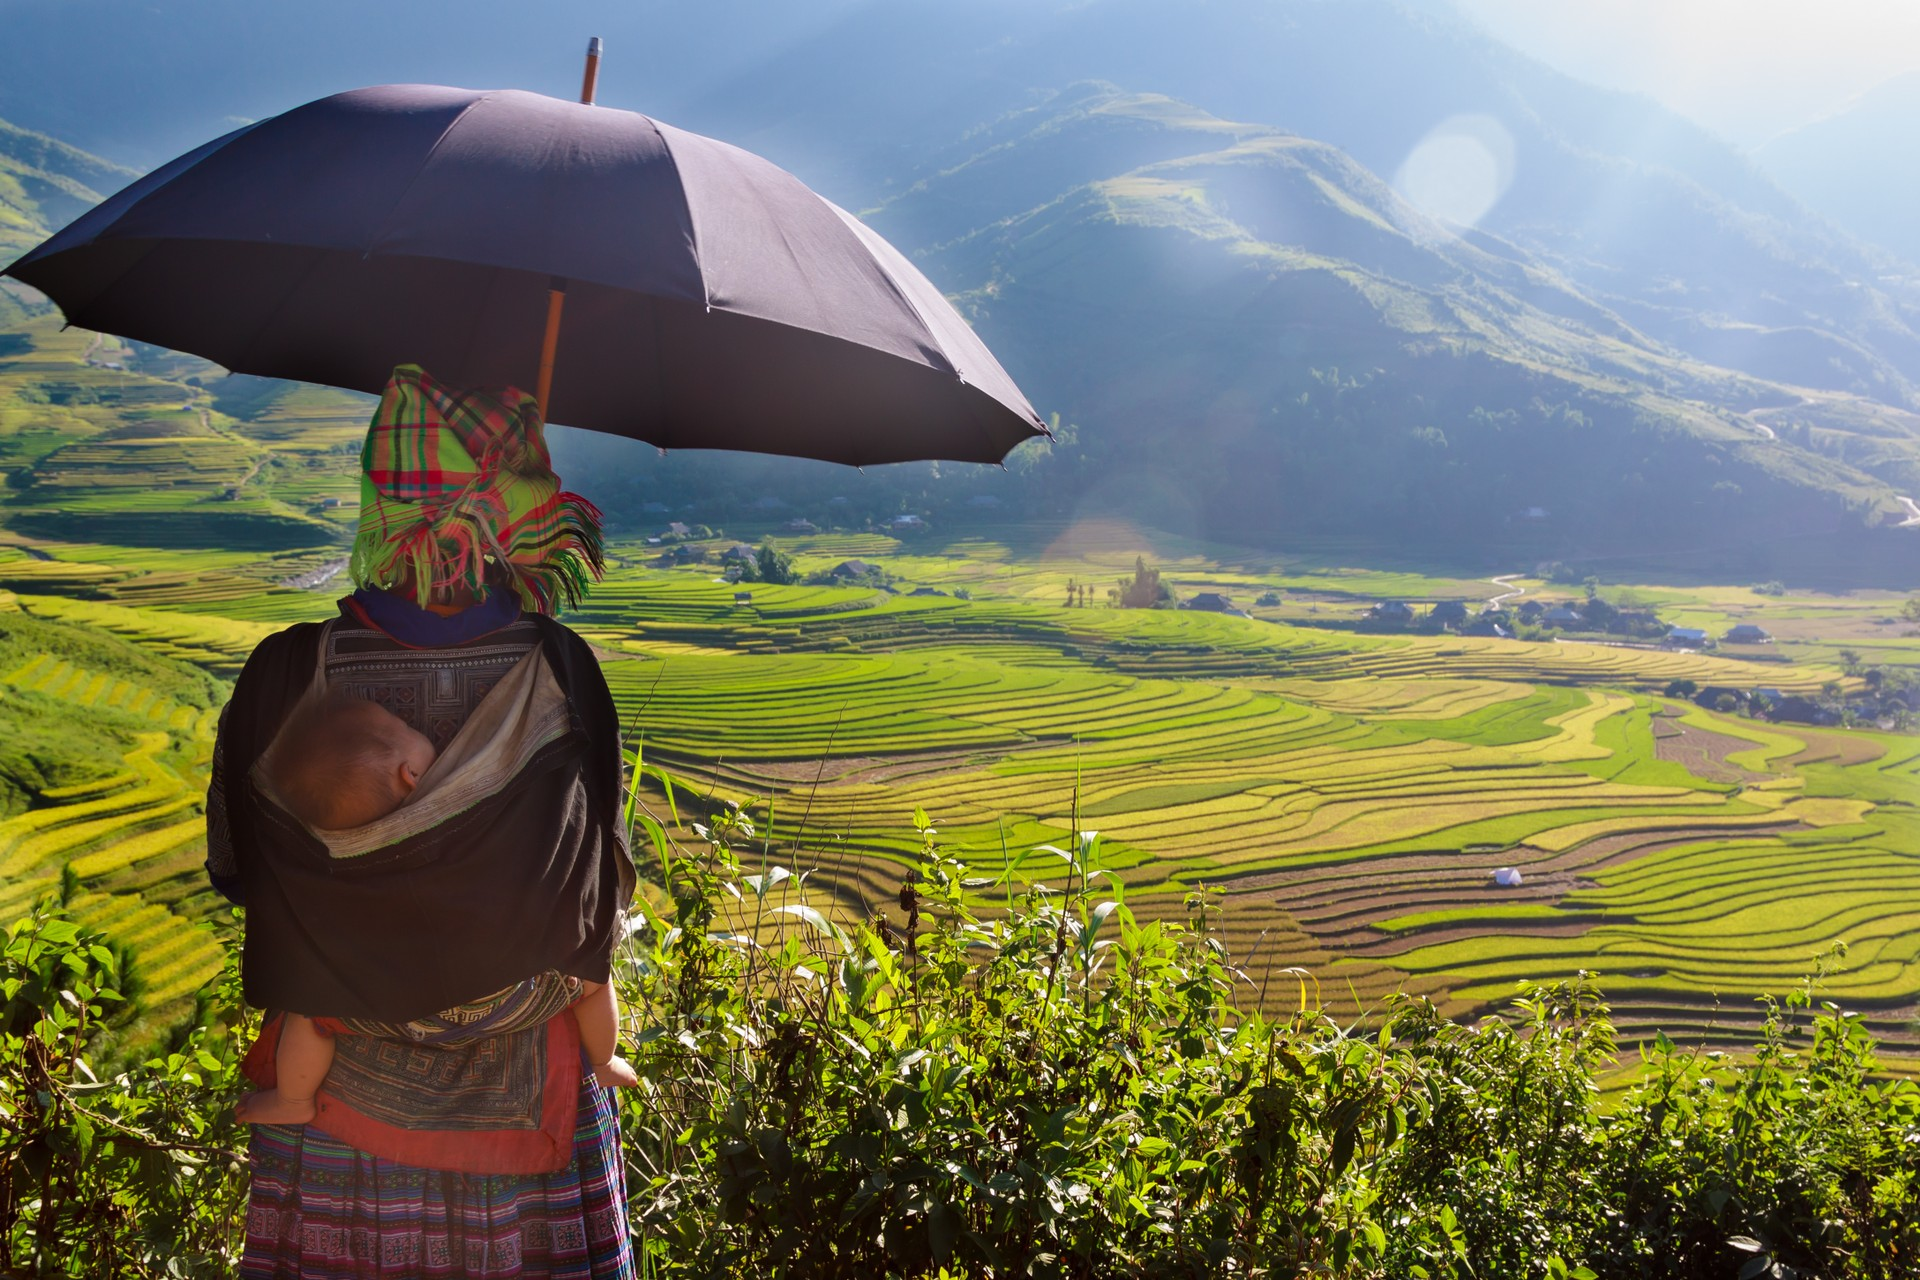 Hmong lady in Sapa, Vietnam